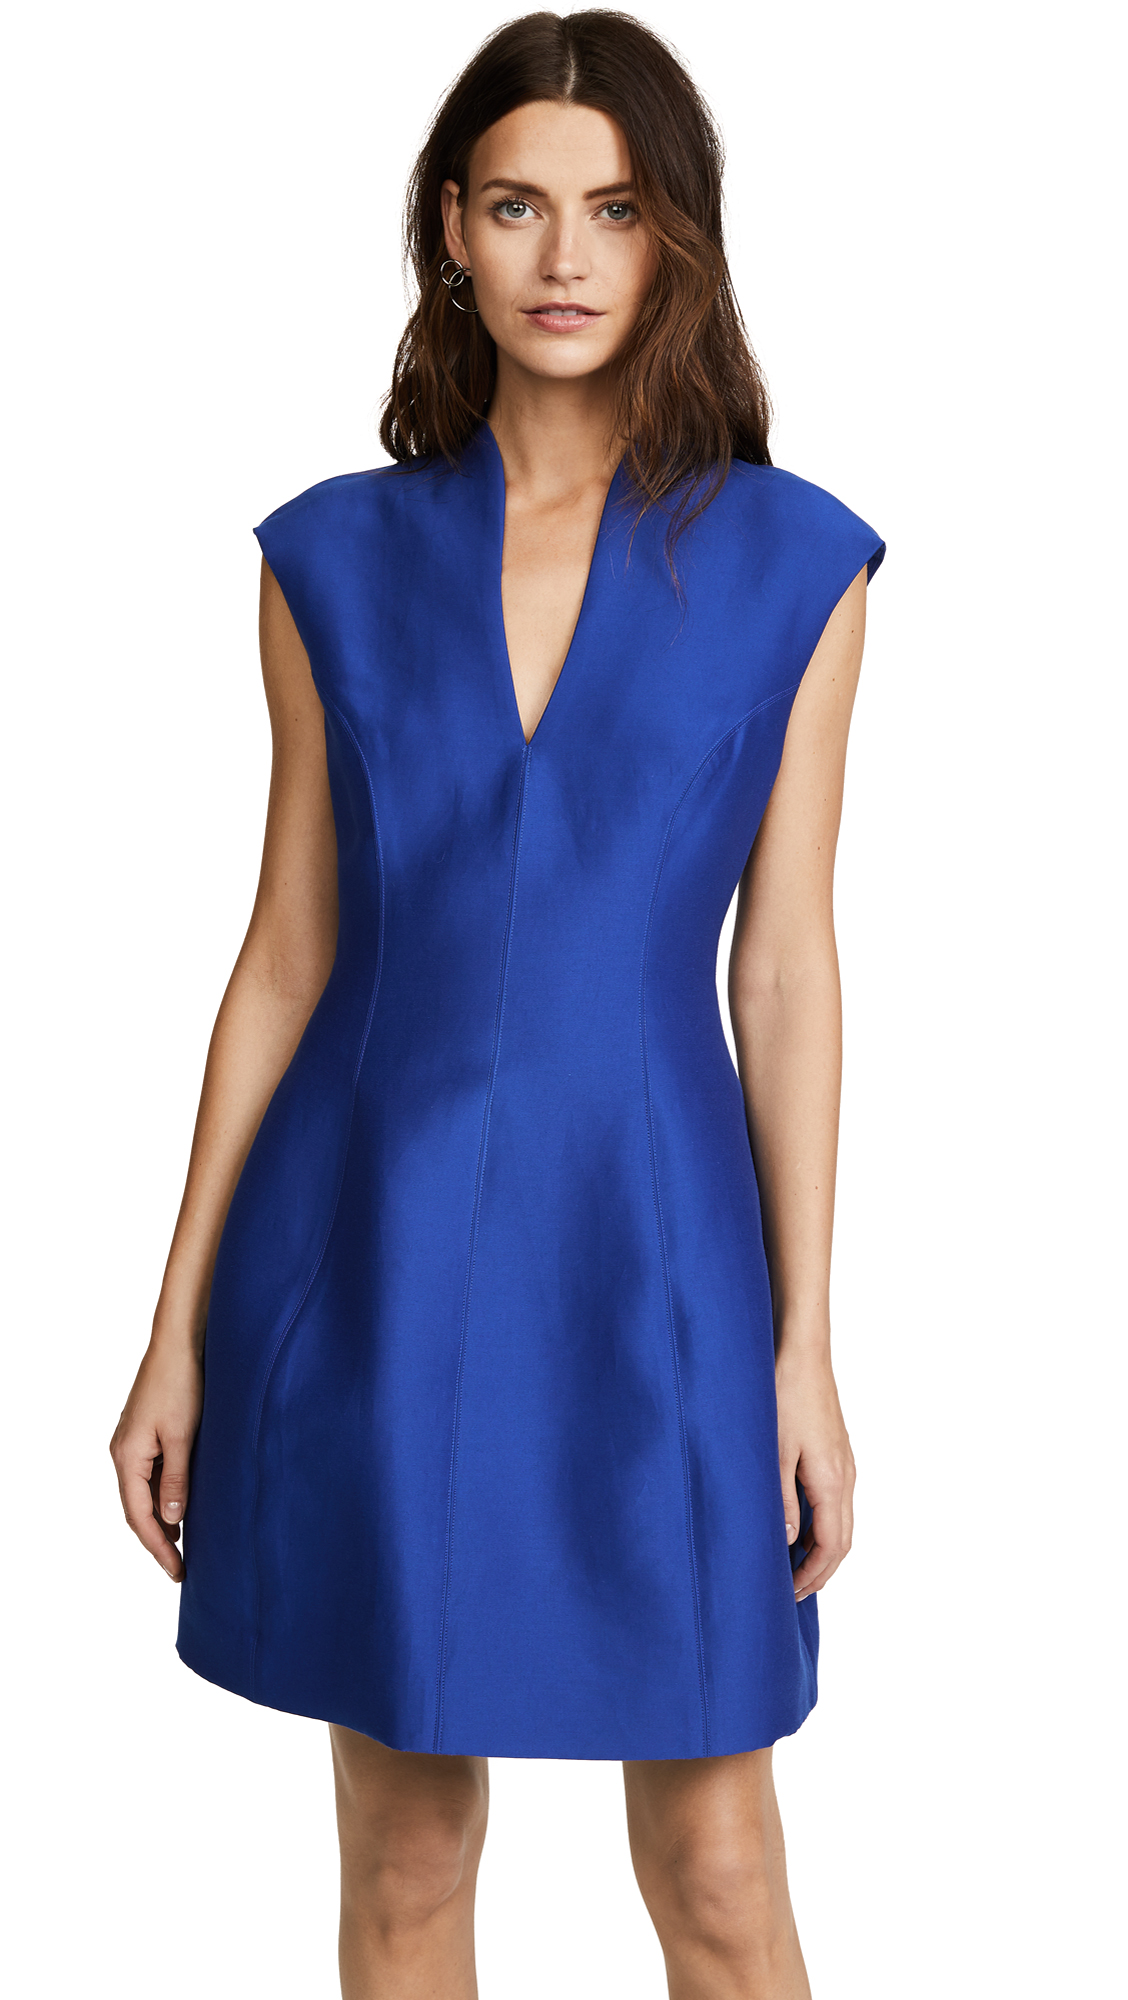 Halston Heritage Cap Sleeve Structured Dress - Indigo